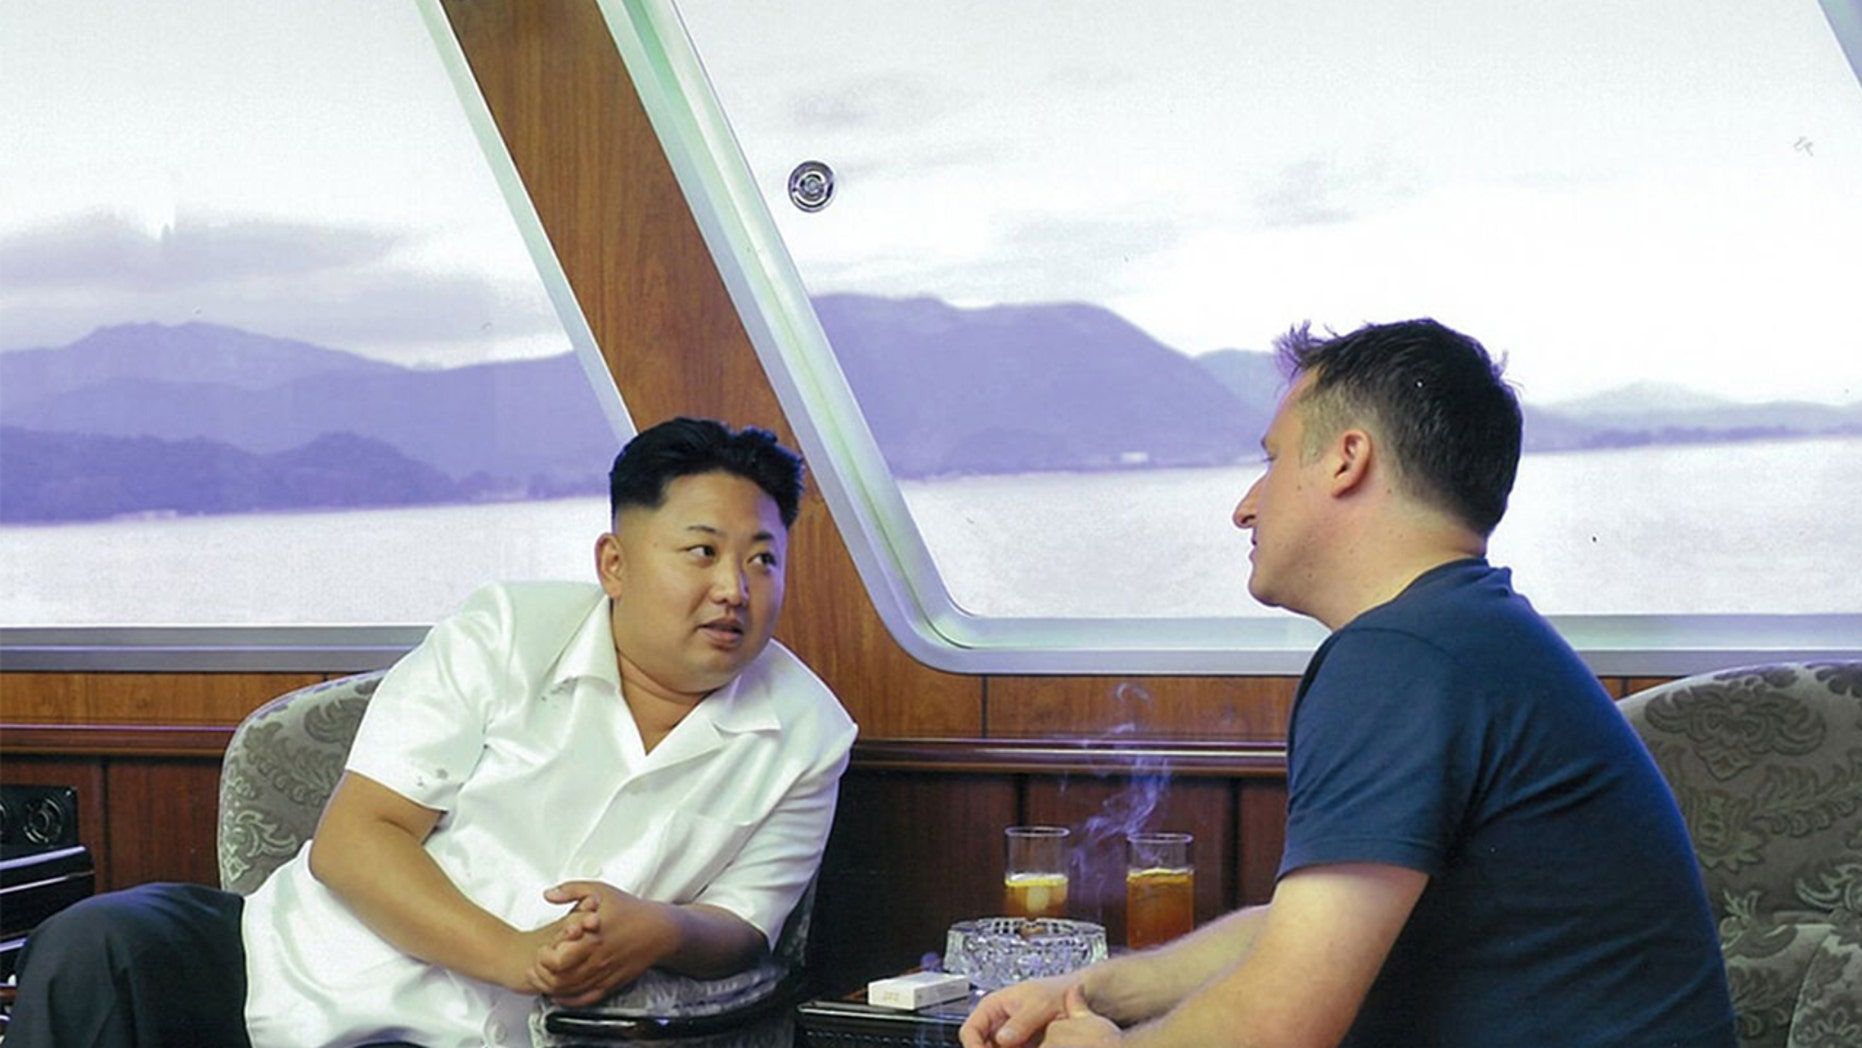 Kim Jong Un shares cocktails with Michael Spavor of the Paektu Cultural Exchange on board the North Korean leader's private yacht in Wonsan, North Korea in 2013.